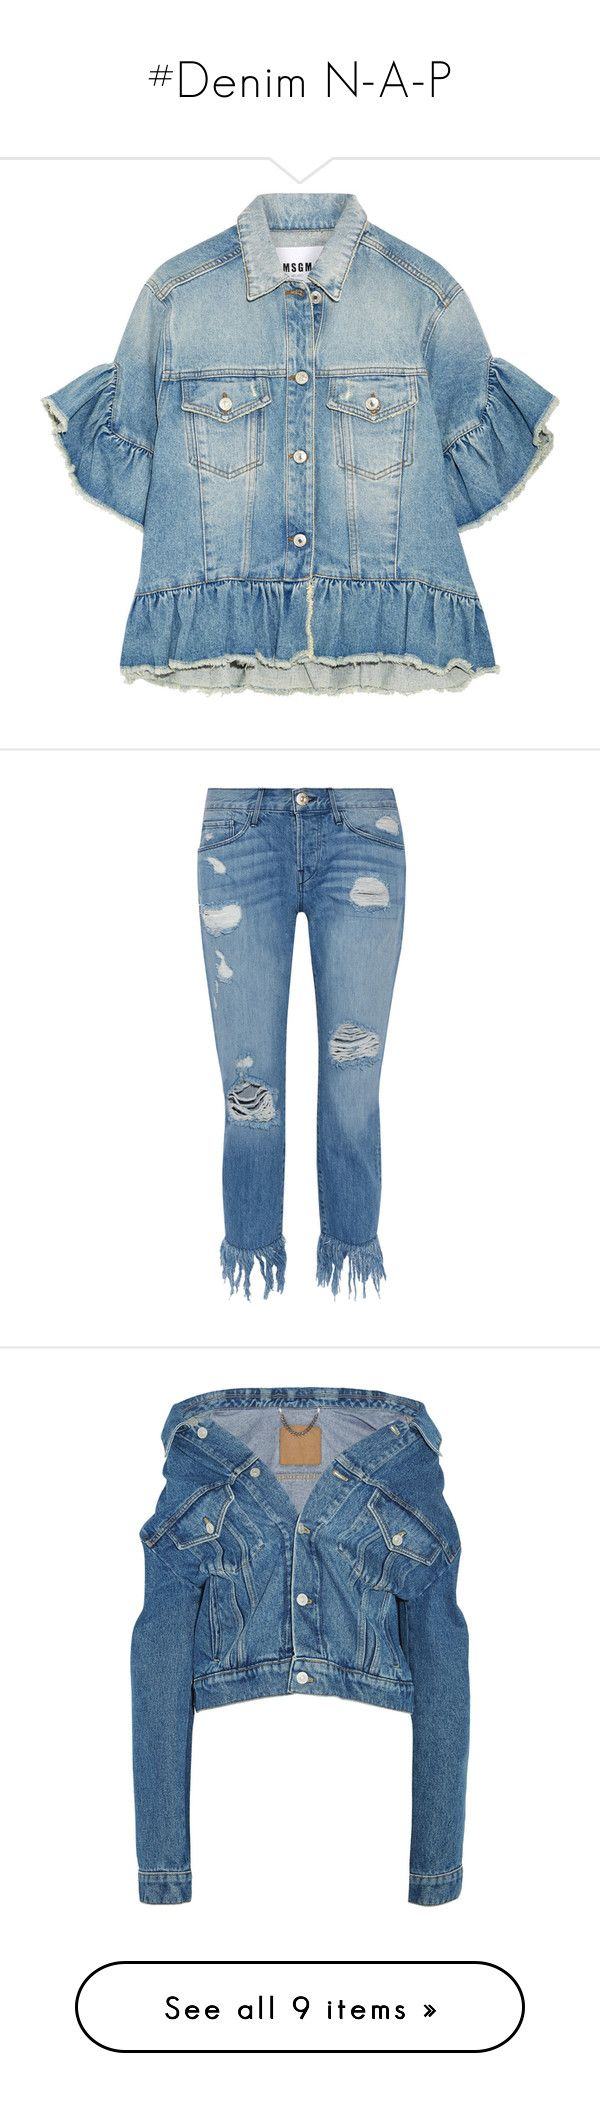 """""""#Denim N-A-P"""" by lolgenie ❤ liked on Polyvore featuring outerwear, jackets, light blue, short sleeve jean jacket, distressed jacket, blue jackets, jean jacket, ruffled jean jacket, jeans and pants"""